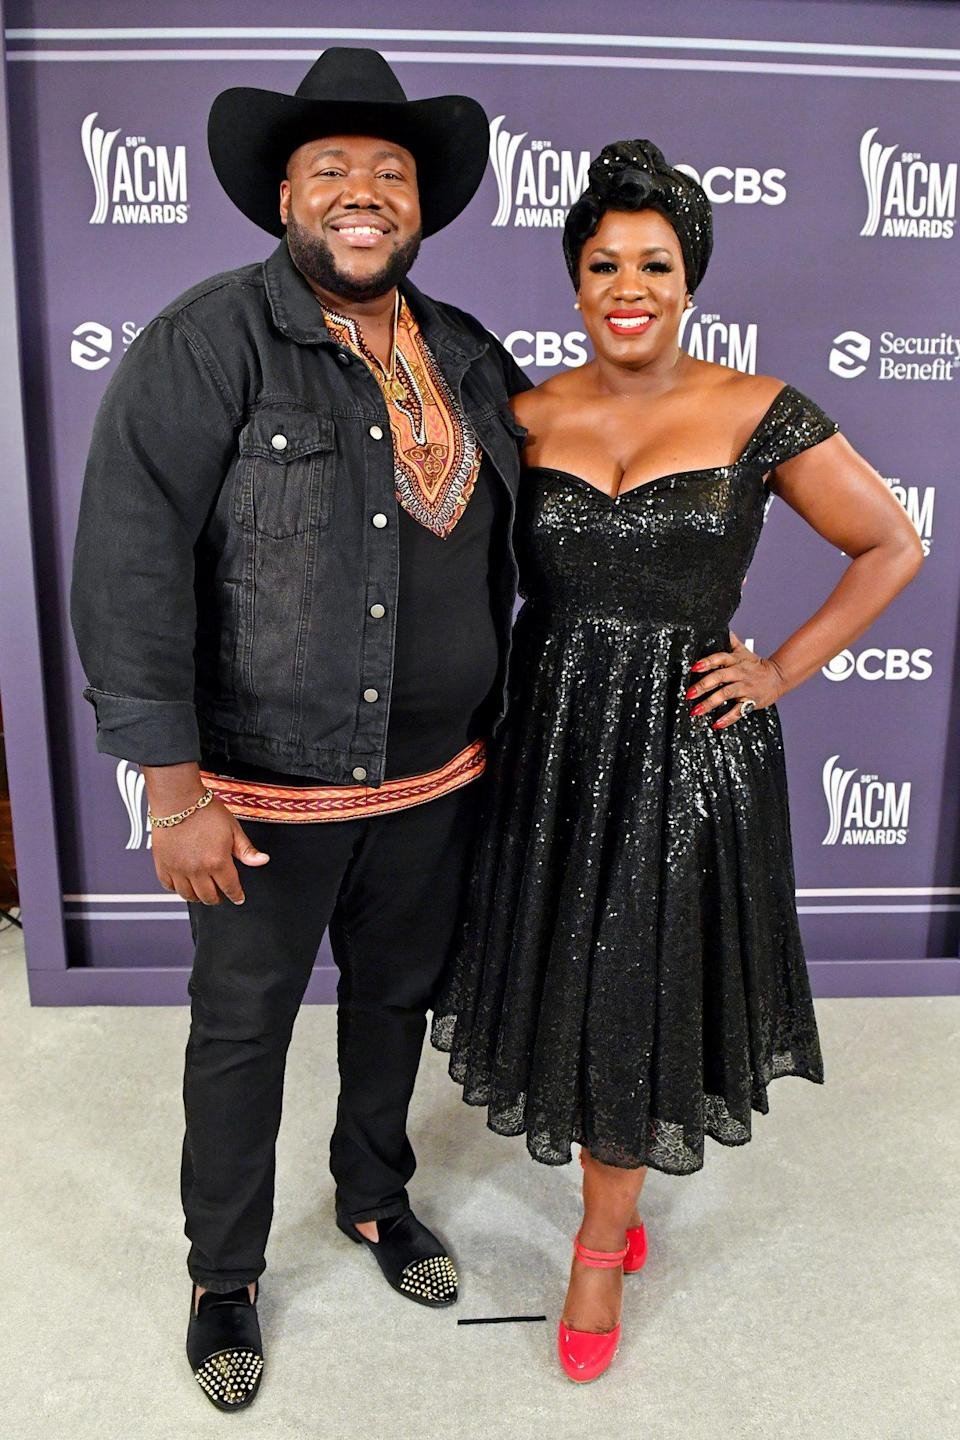 <p>The Nashville-based couple, a.k.a. The War and Treaty, added a little sparkle to the ACM Awards. </p>